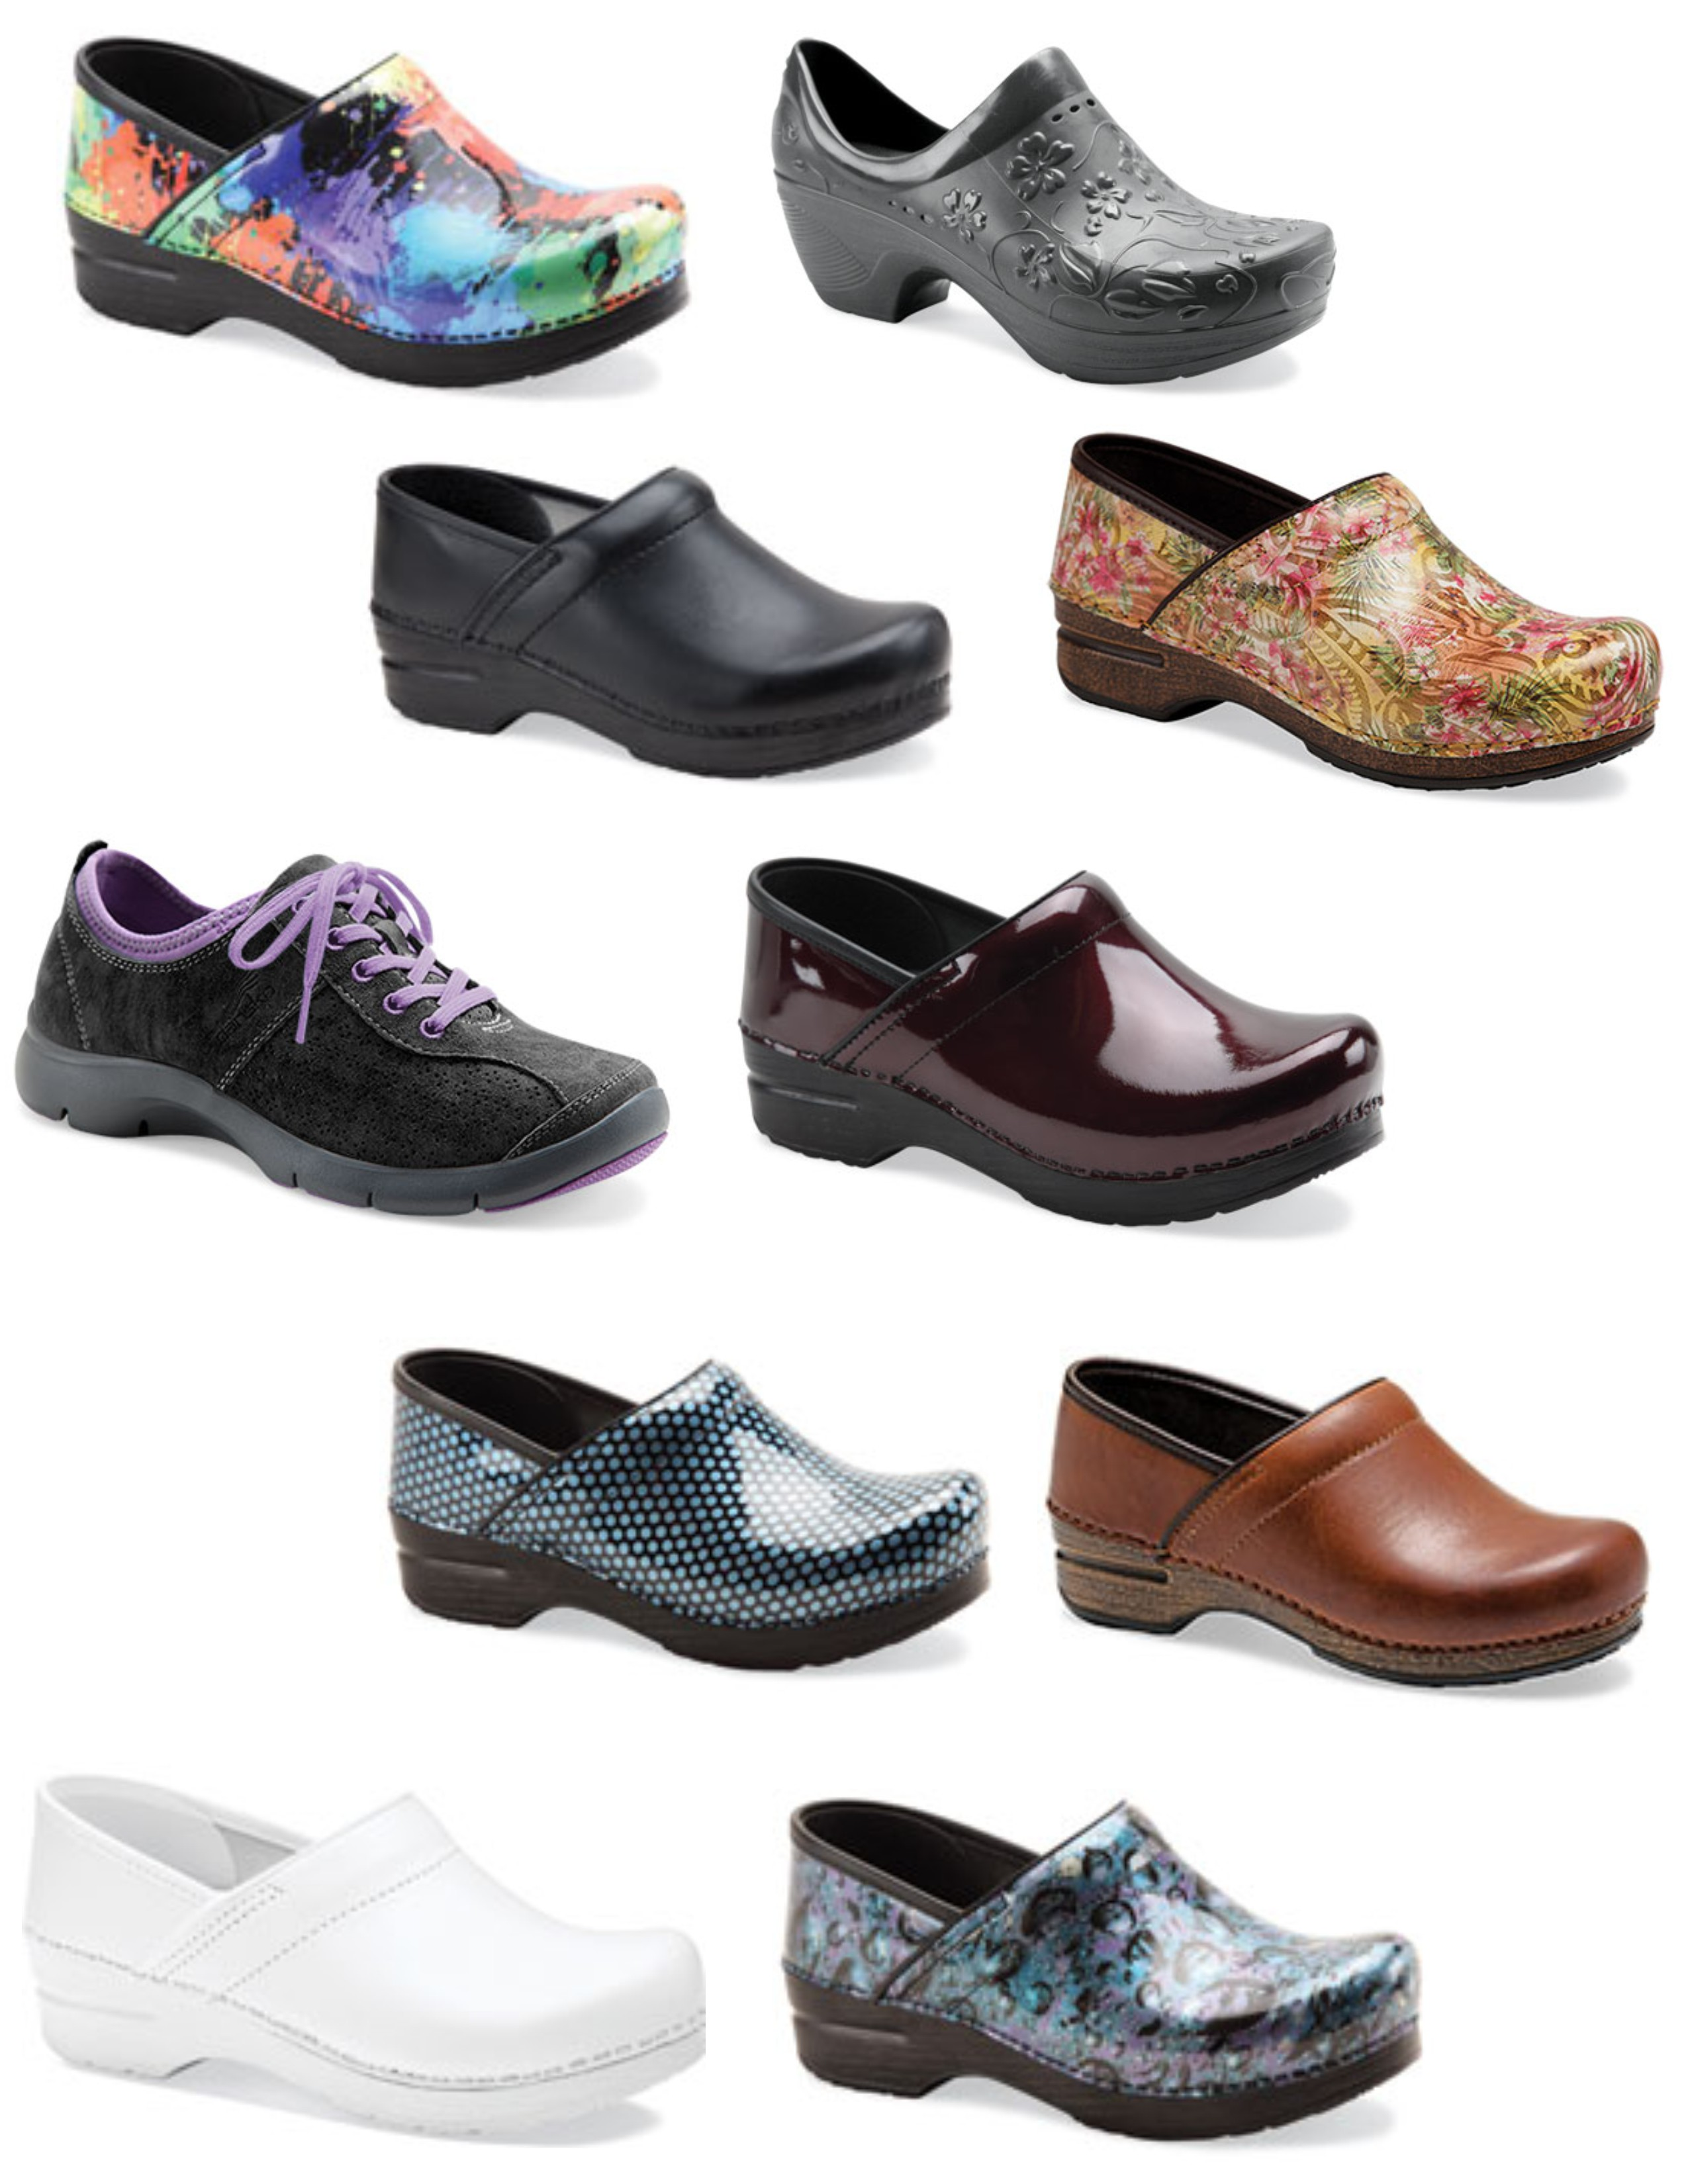 Dansko Shoes Melbourne